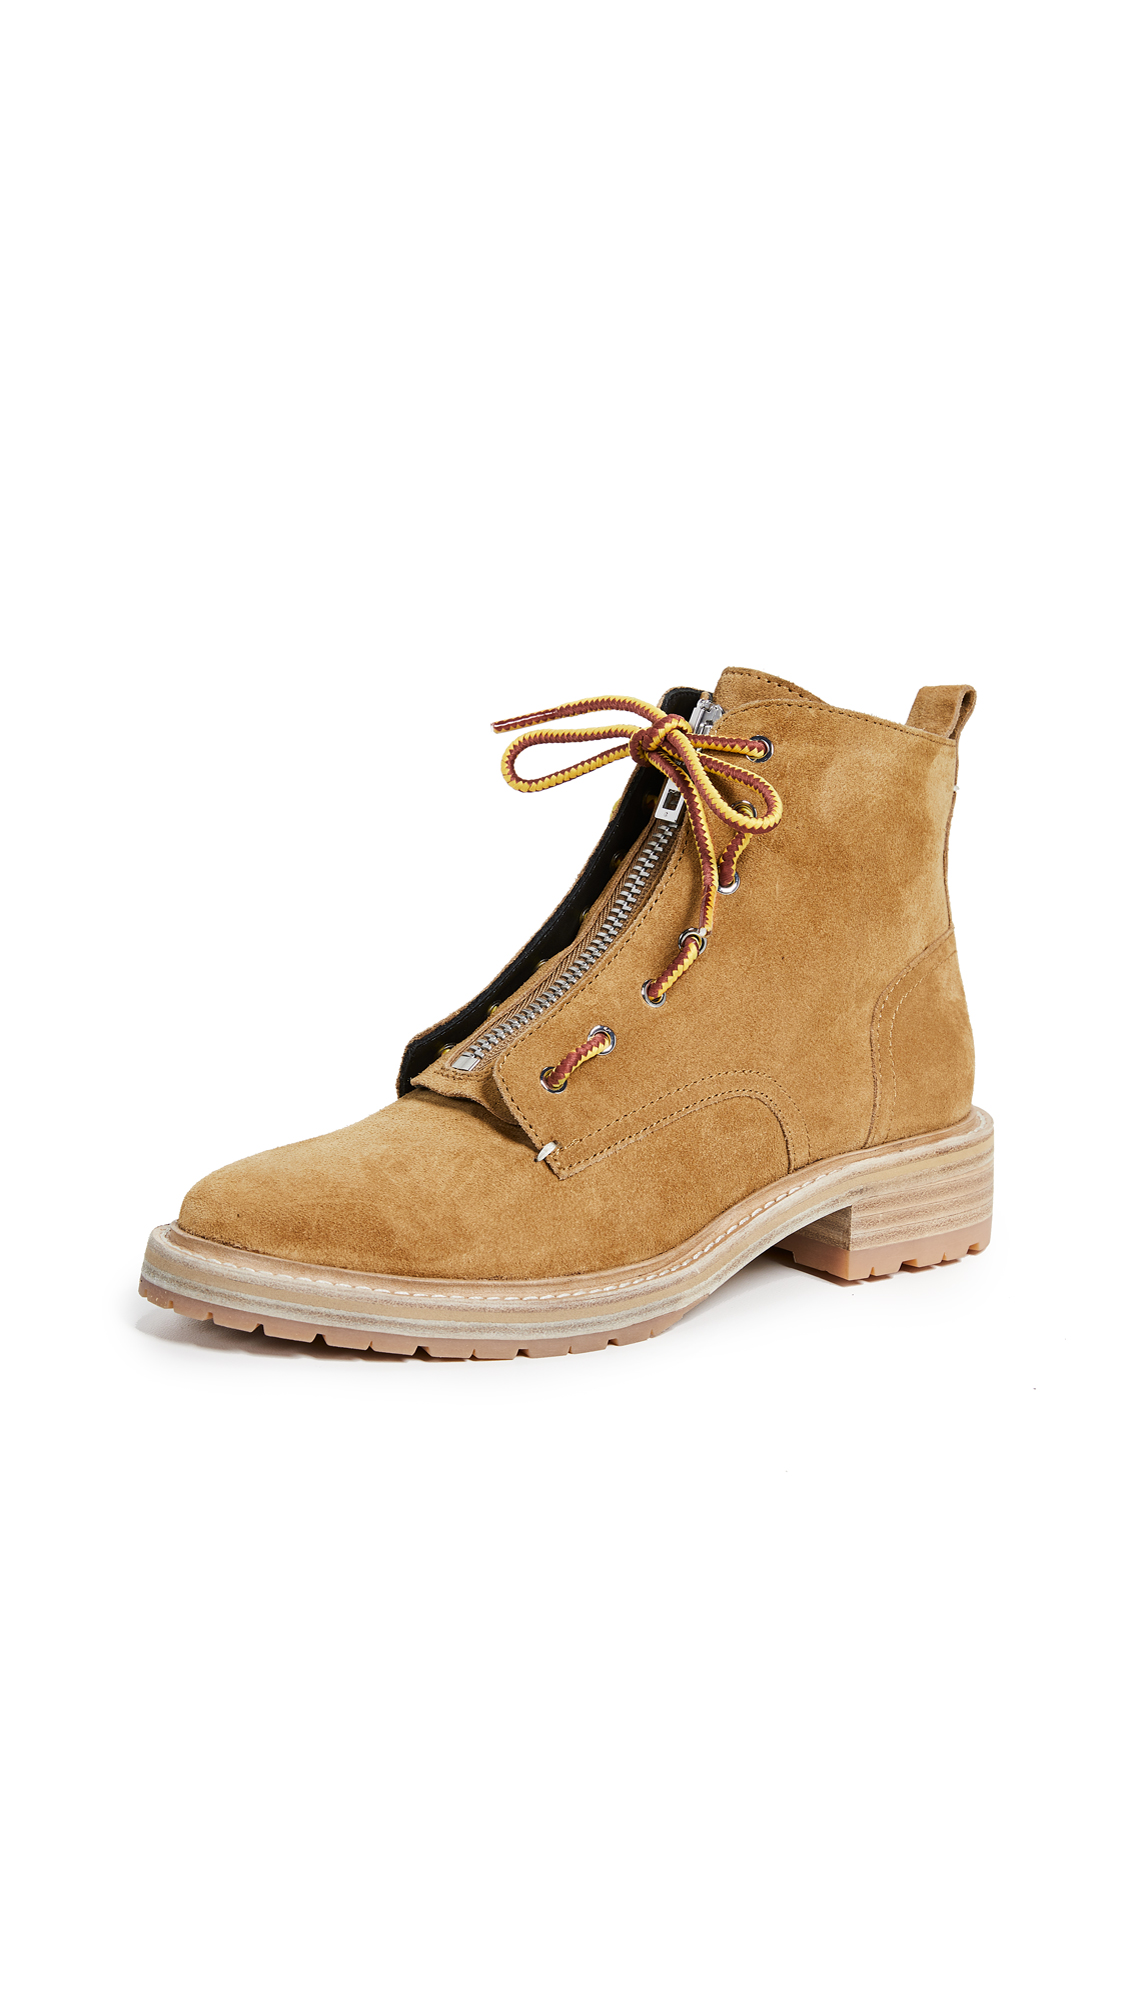 Rag & Bone Cannon Boots - Oak